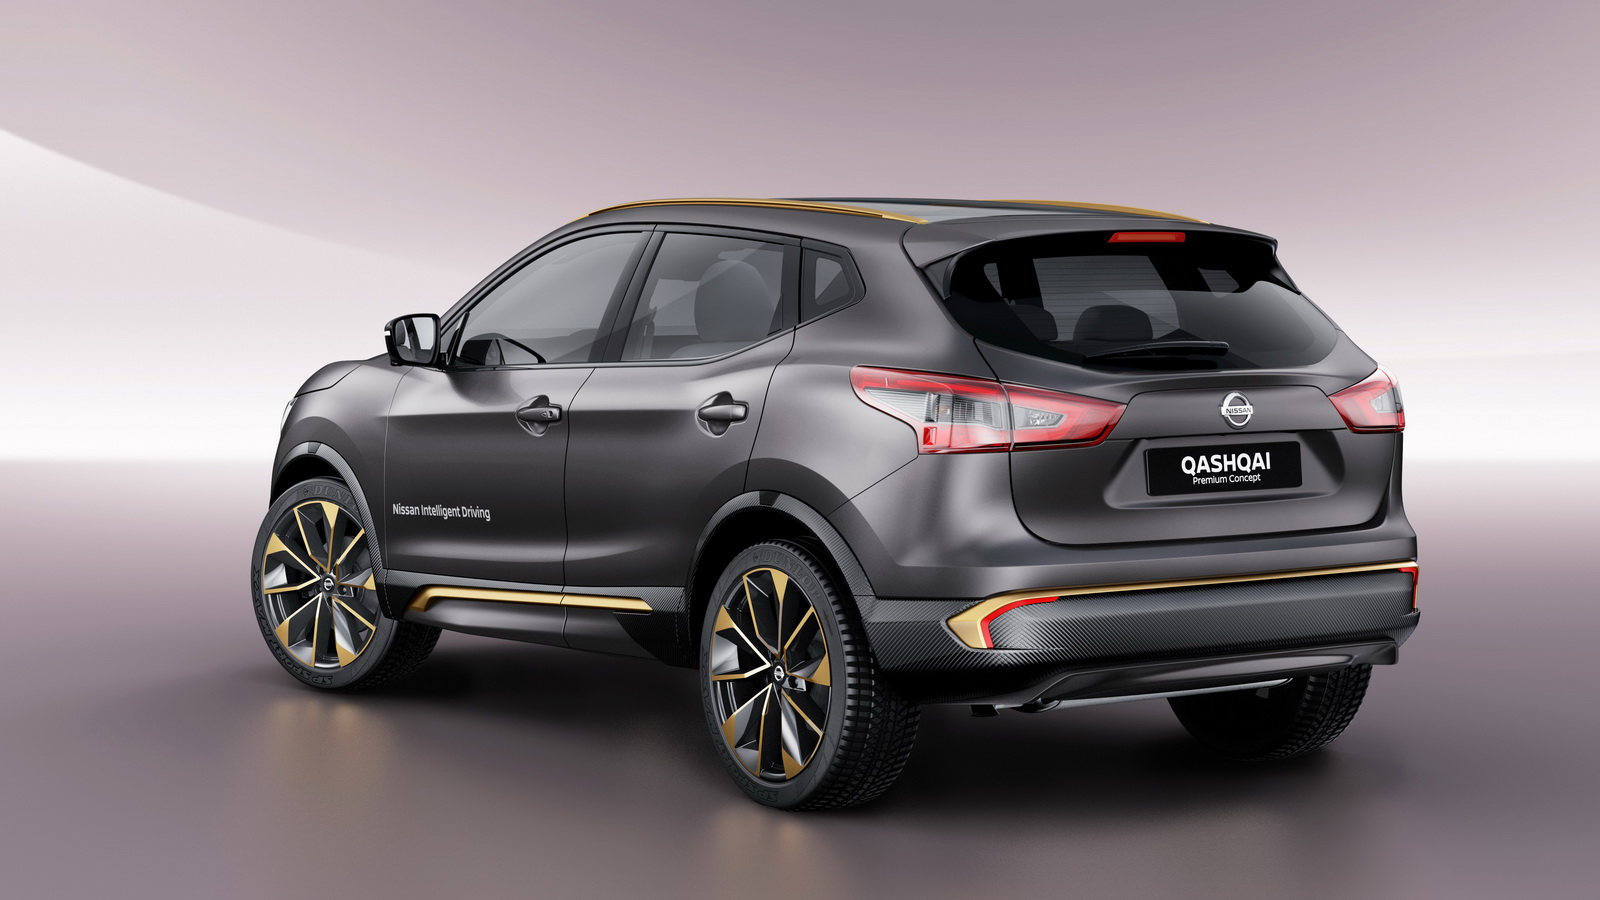 Nissan To Launch Semi-Autonomous Qashqai Crossover Next Year